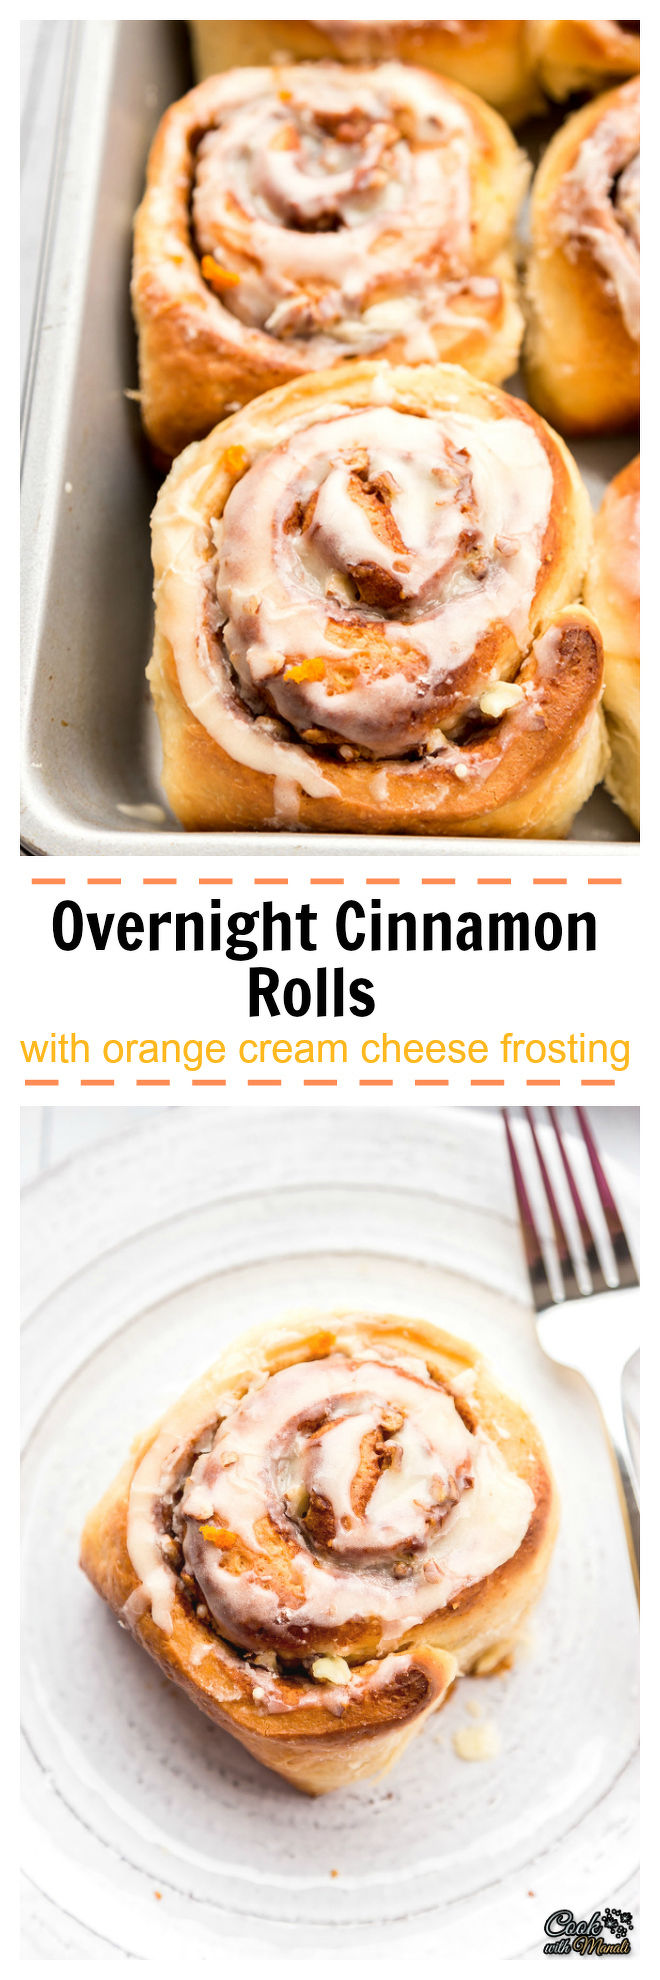 Overnight Cinnamon Rolls With Orange Cream Cheese Collage-nocwm